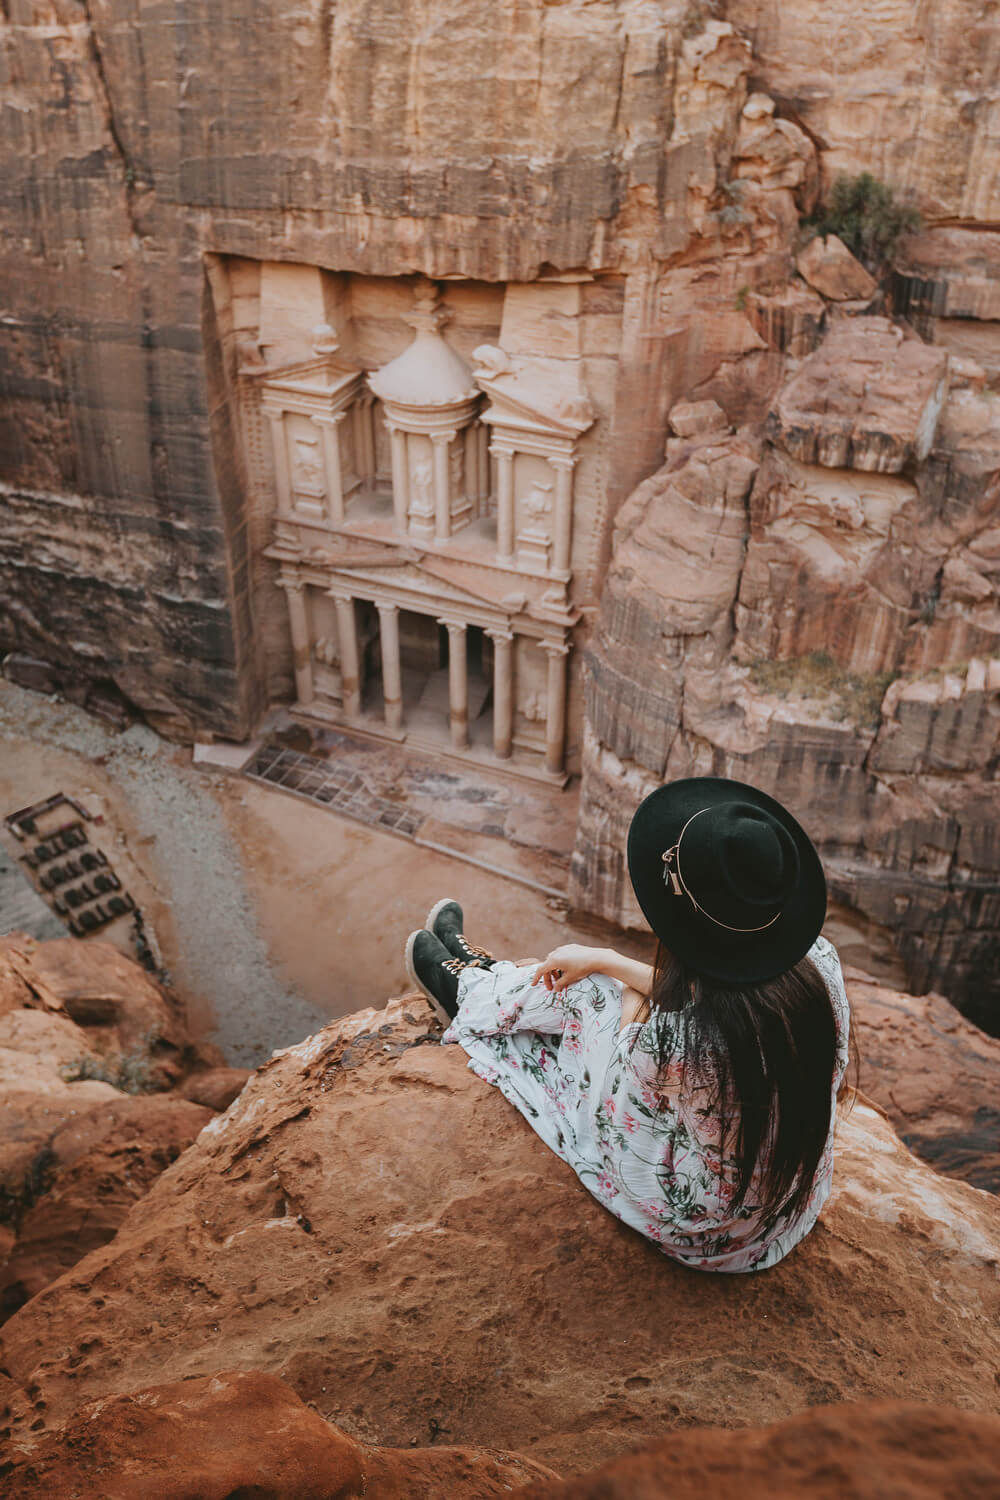 Photo of The Treasury, Petra from above. Shot by Jona Grey